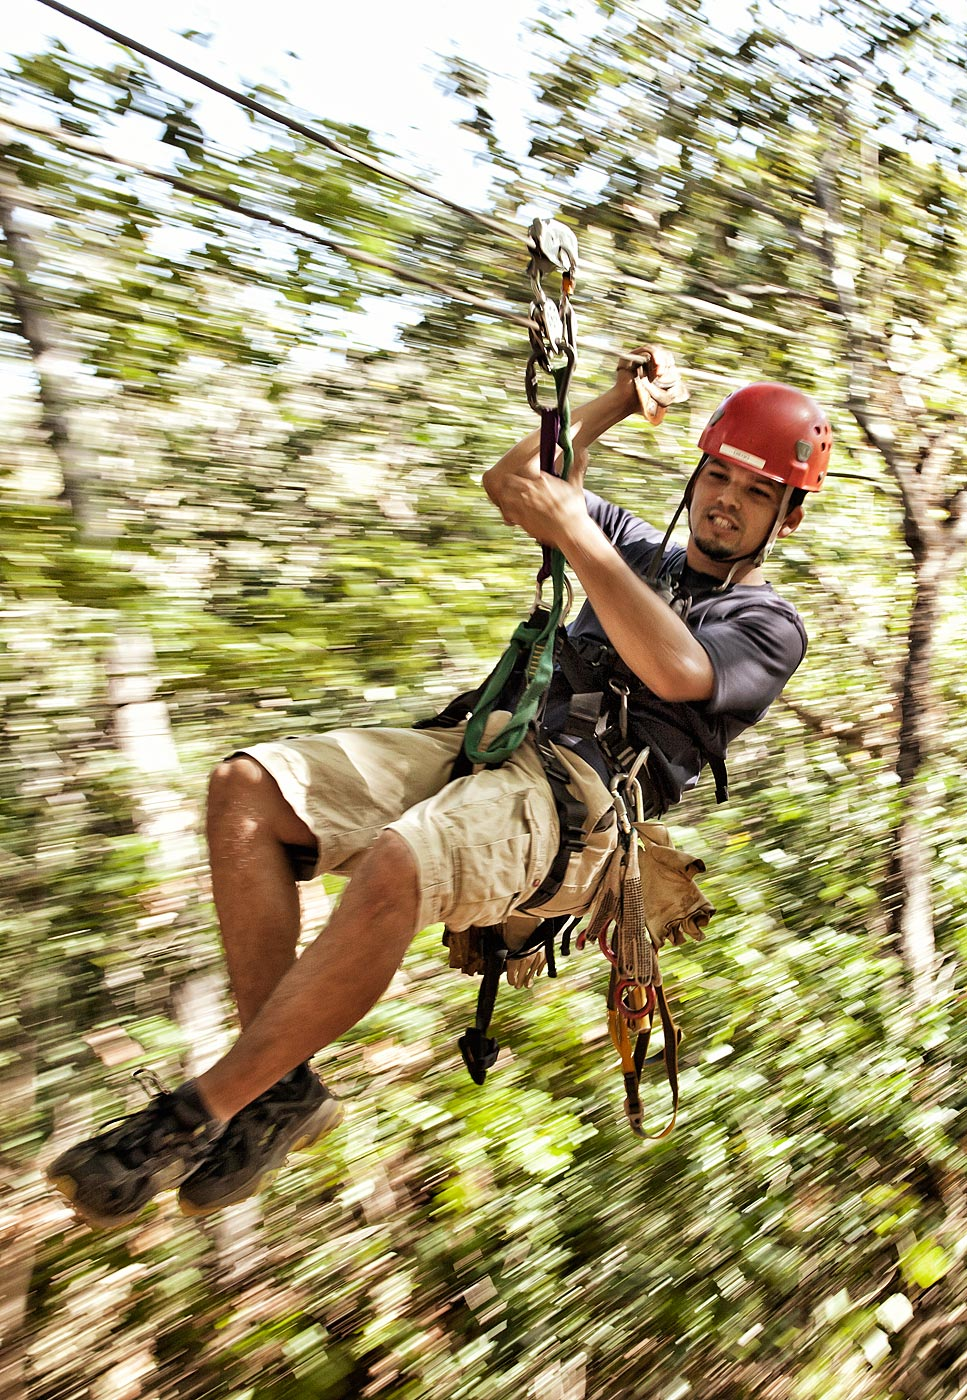 Adventure-ABP-Costa-Rica-zip-line2.jpg